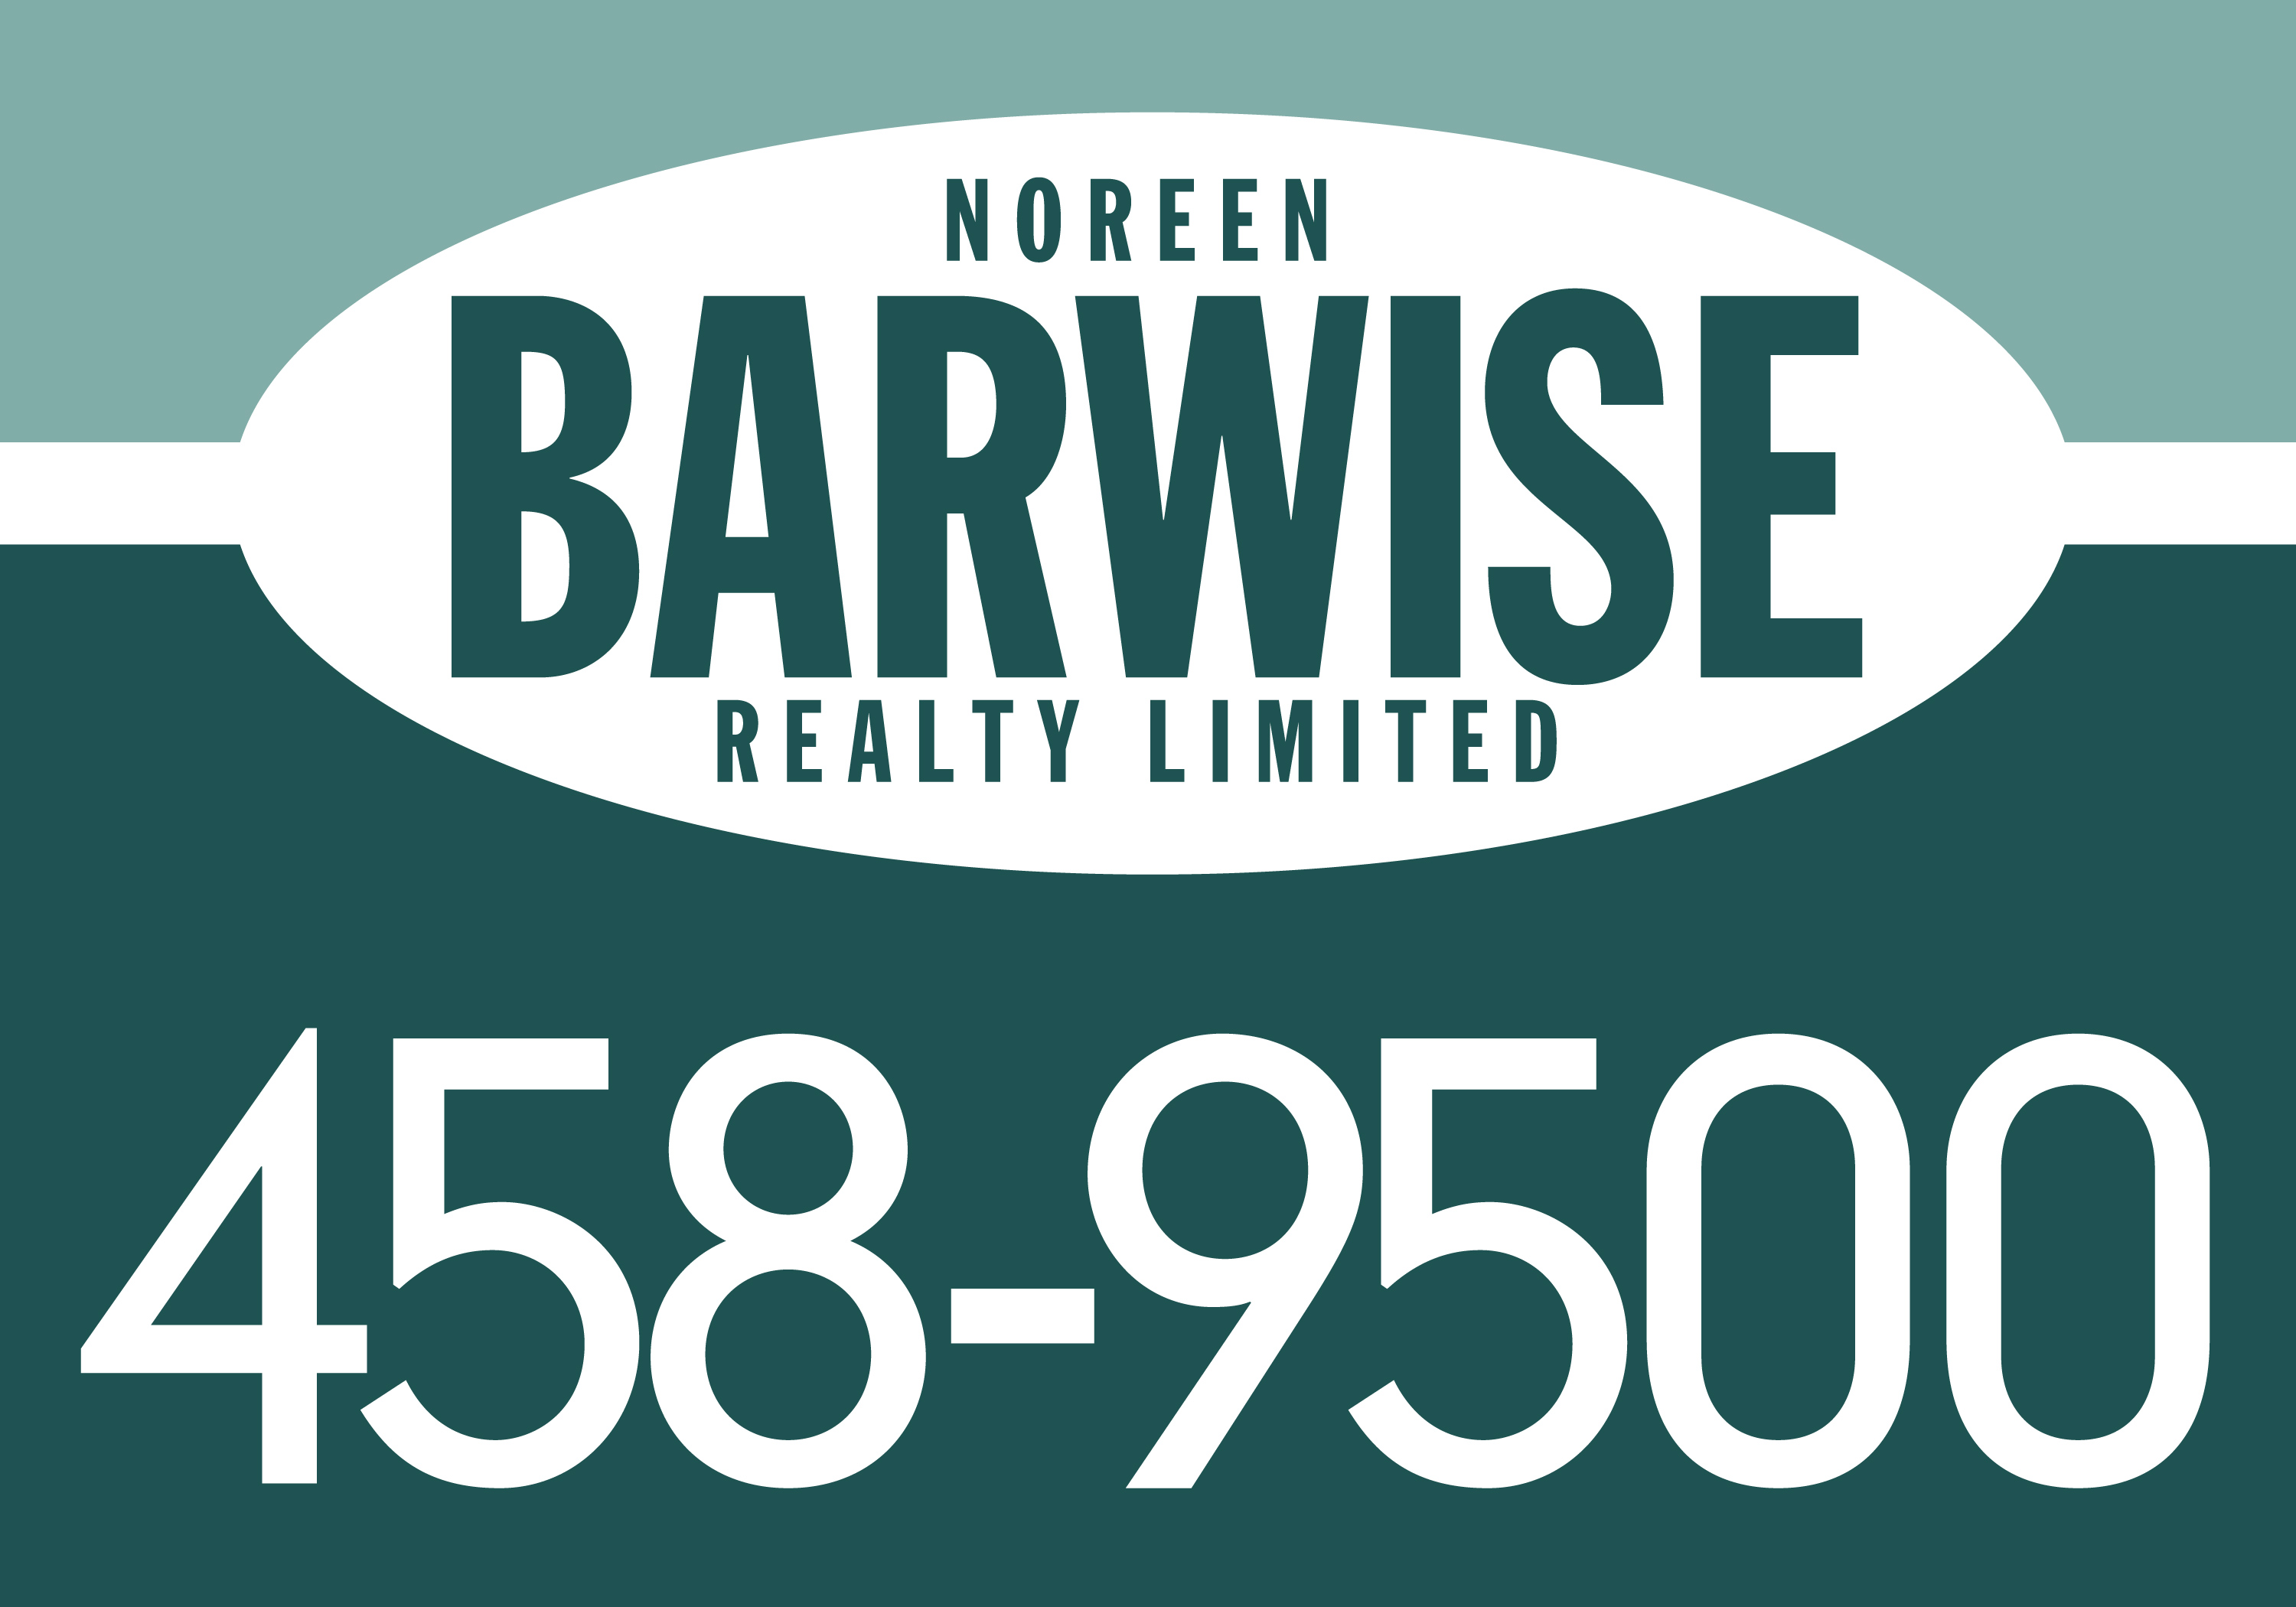 Noreen Barwise Realty